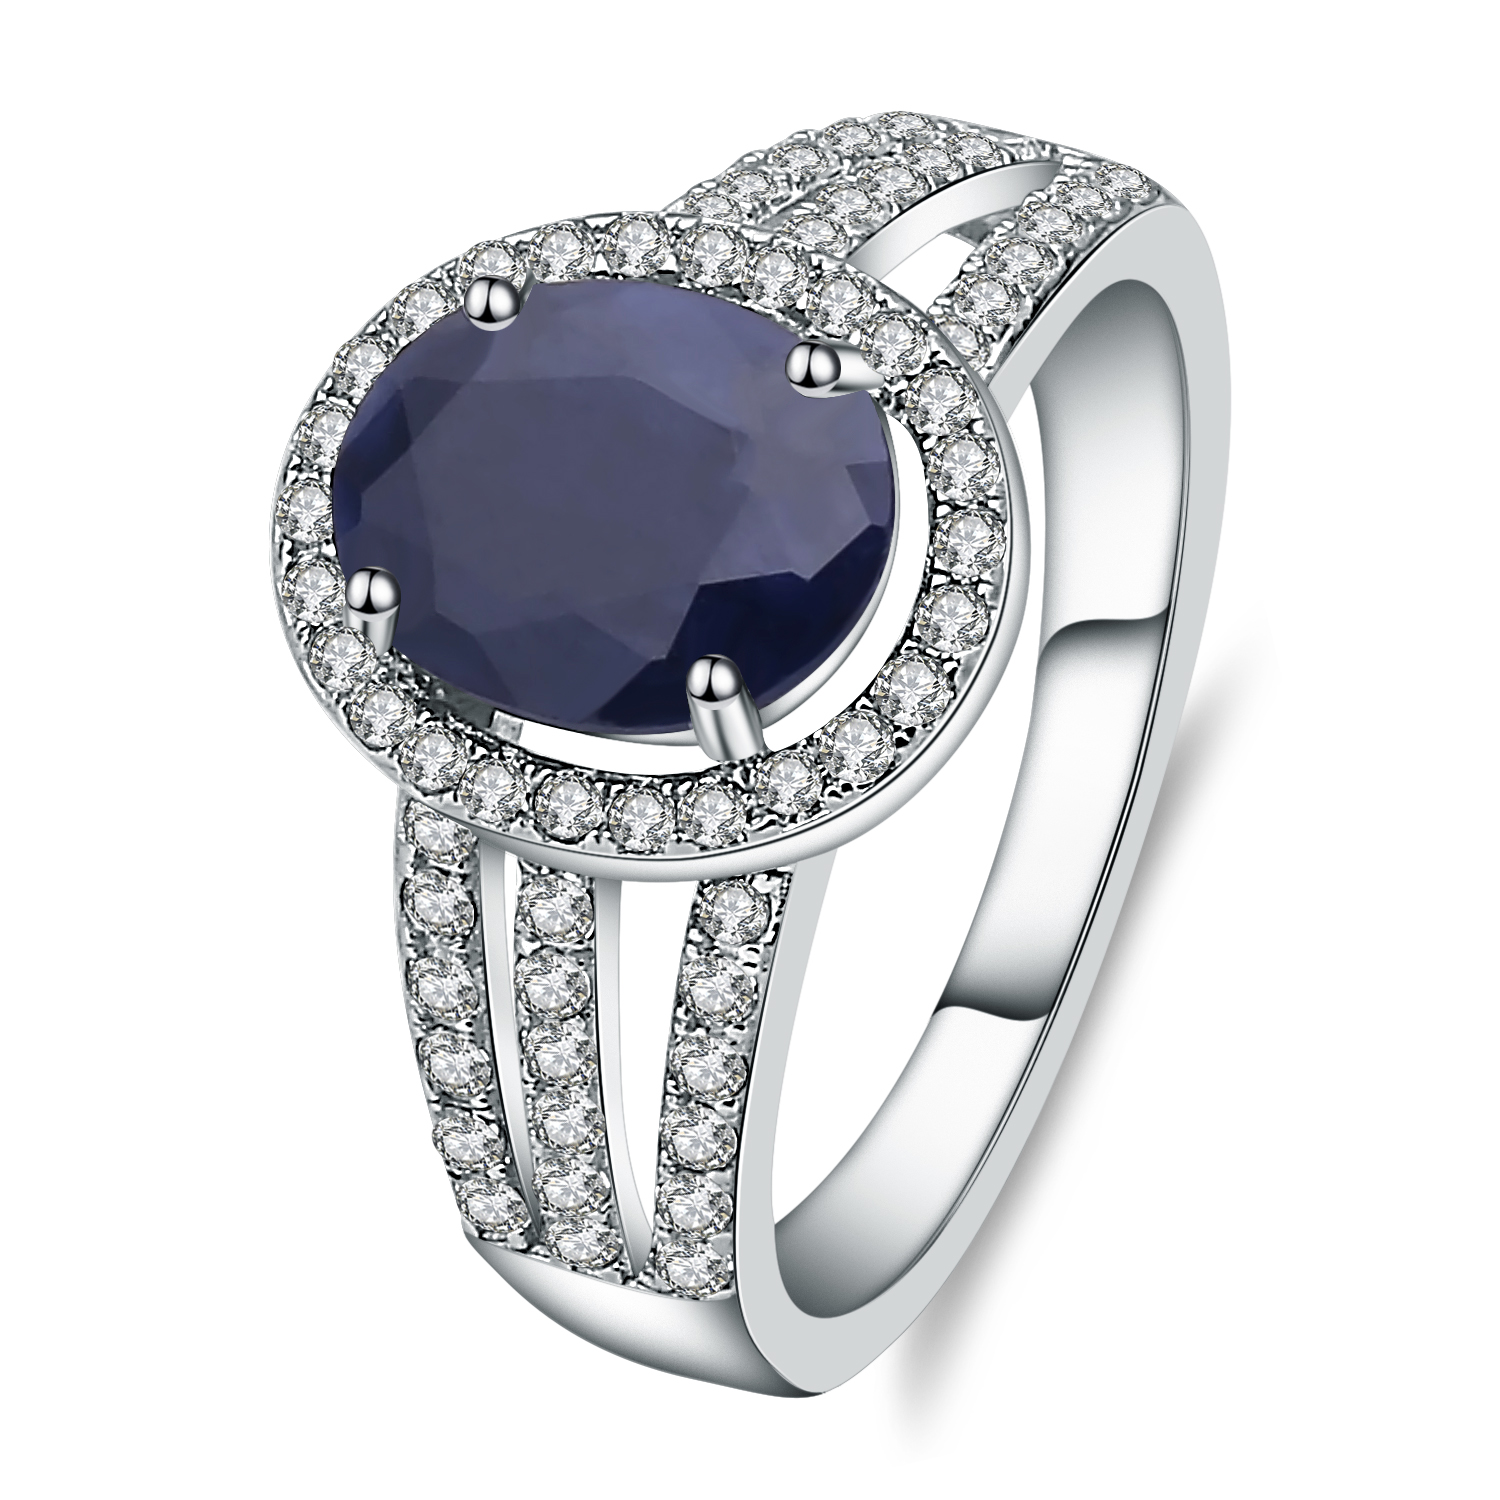 Gem's Ballet 2.02Ct Natural Blue Sapphire Gemstone Wedding Engagement Ring 925 Sterling Silver Fine Jewelry For Women